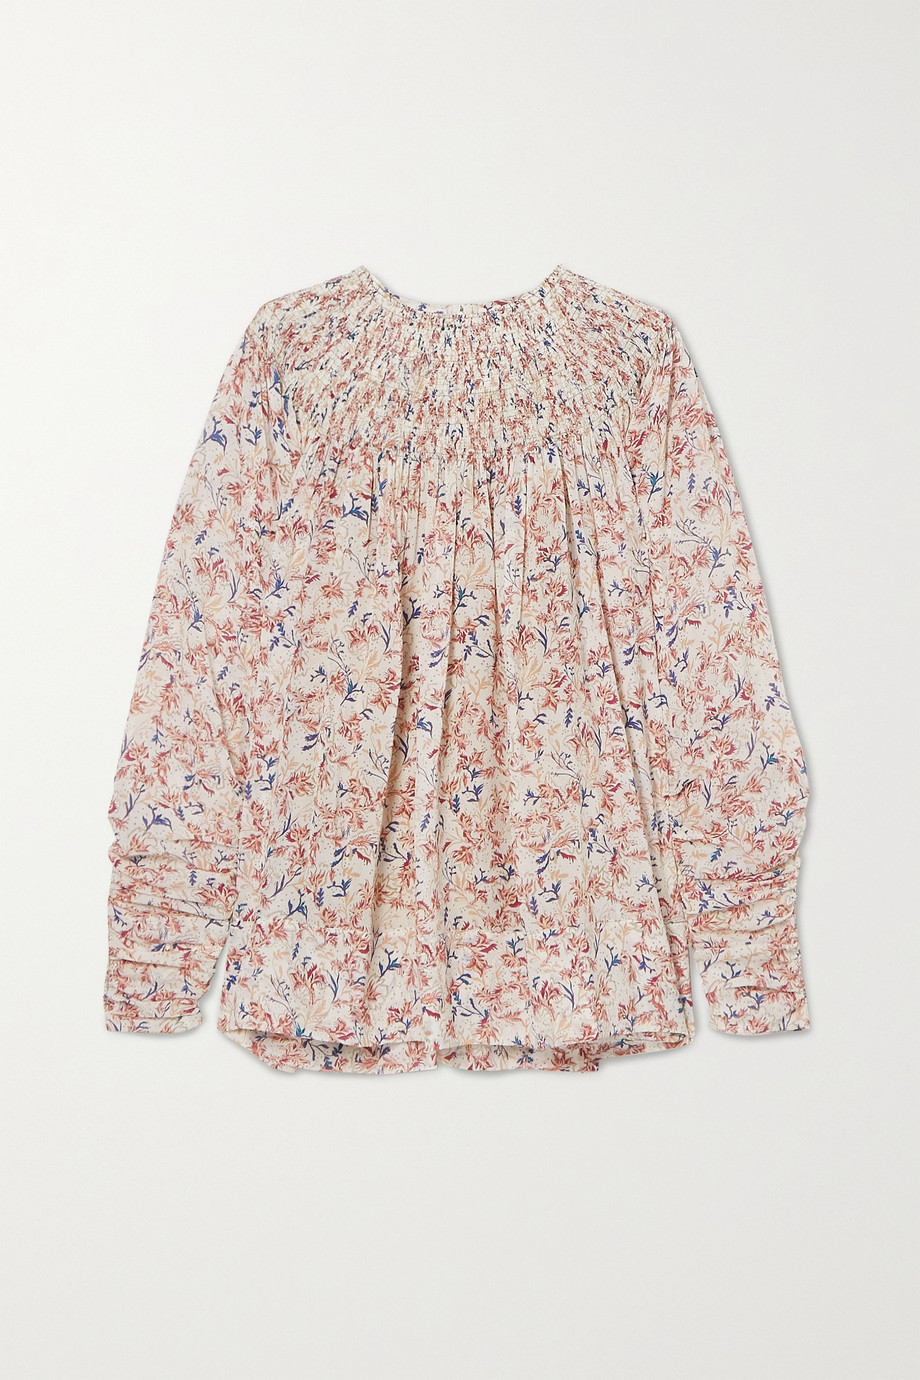 Chloé Ruched shirred floral-print silk blouse